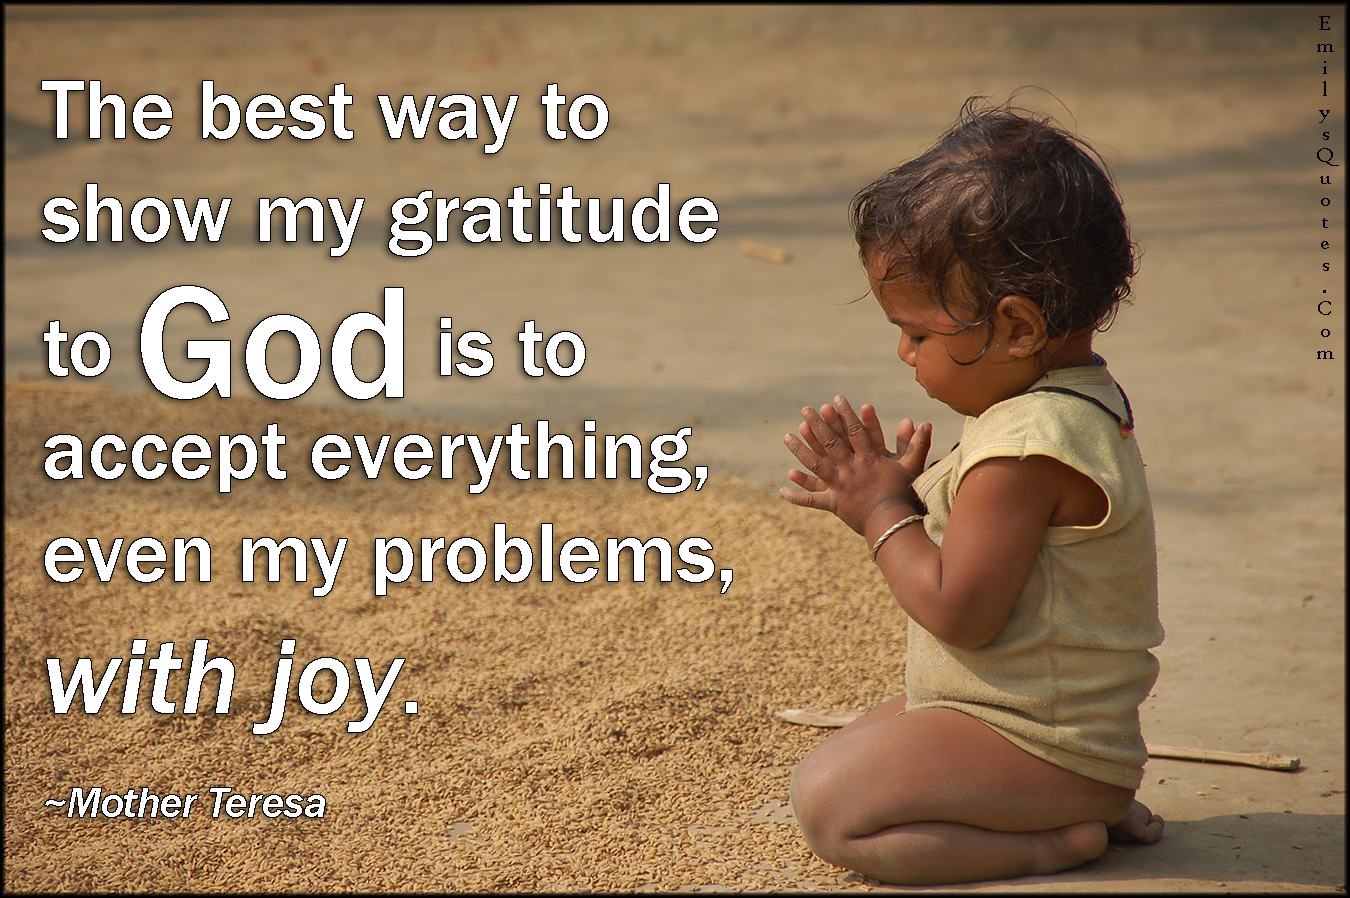 Quotes Gratitude The Best Way To Show My Gratitude To God Is To Accept Everything